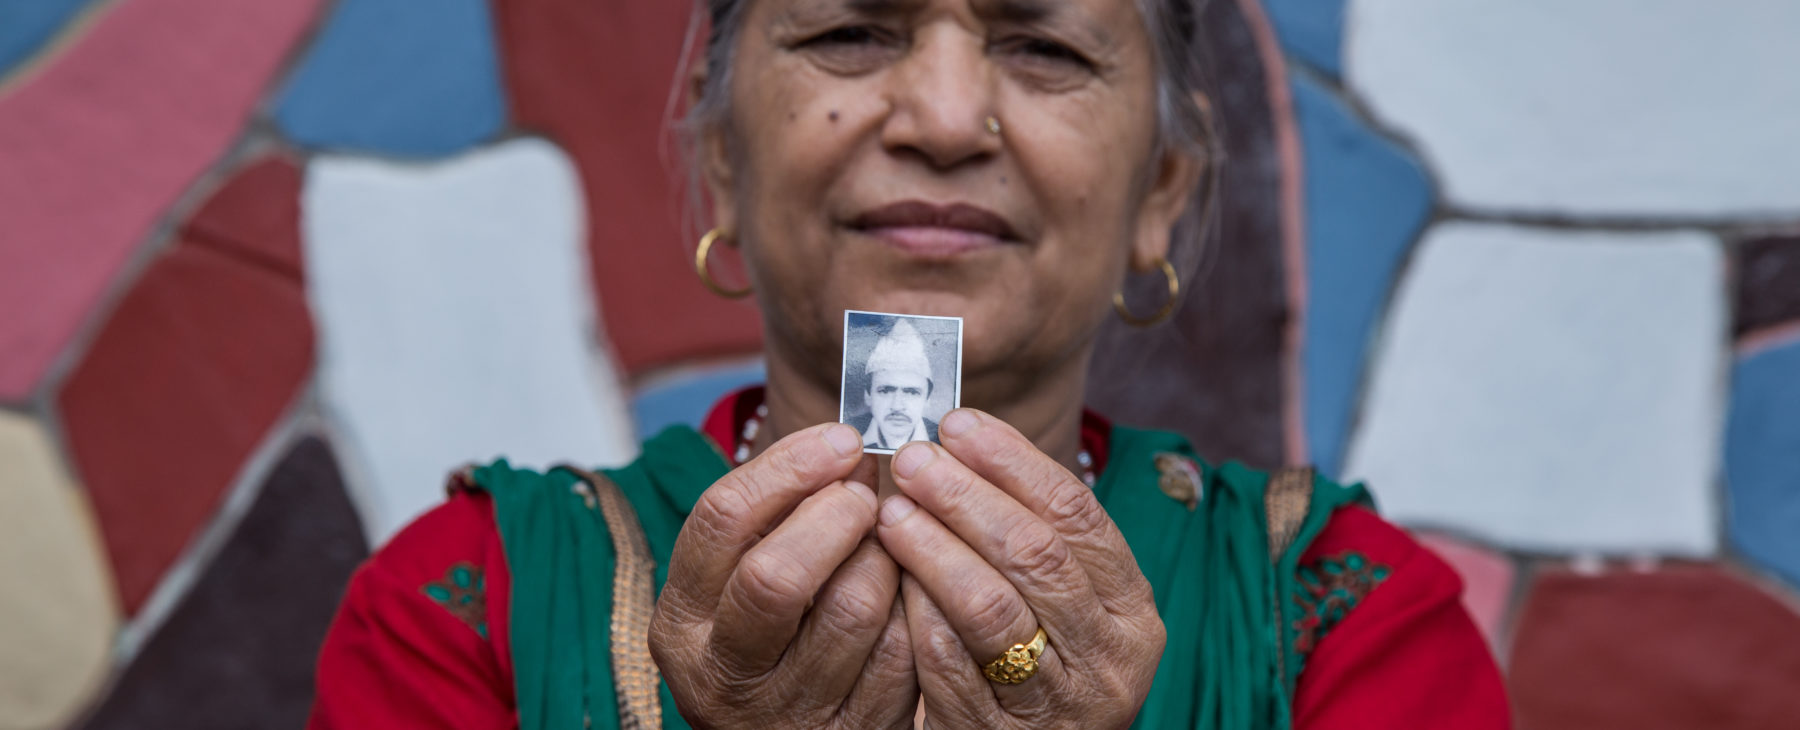 International Day of the Disappeared: Didn't we say 'never again'?